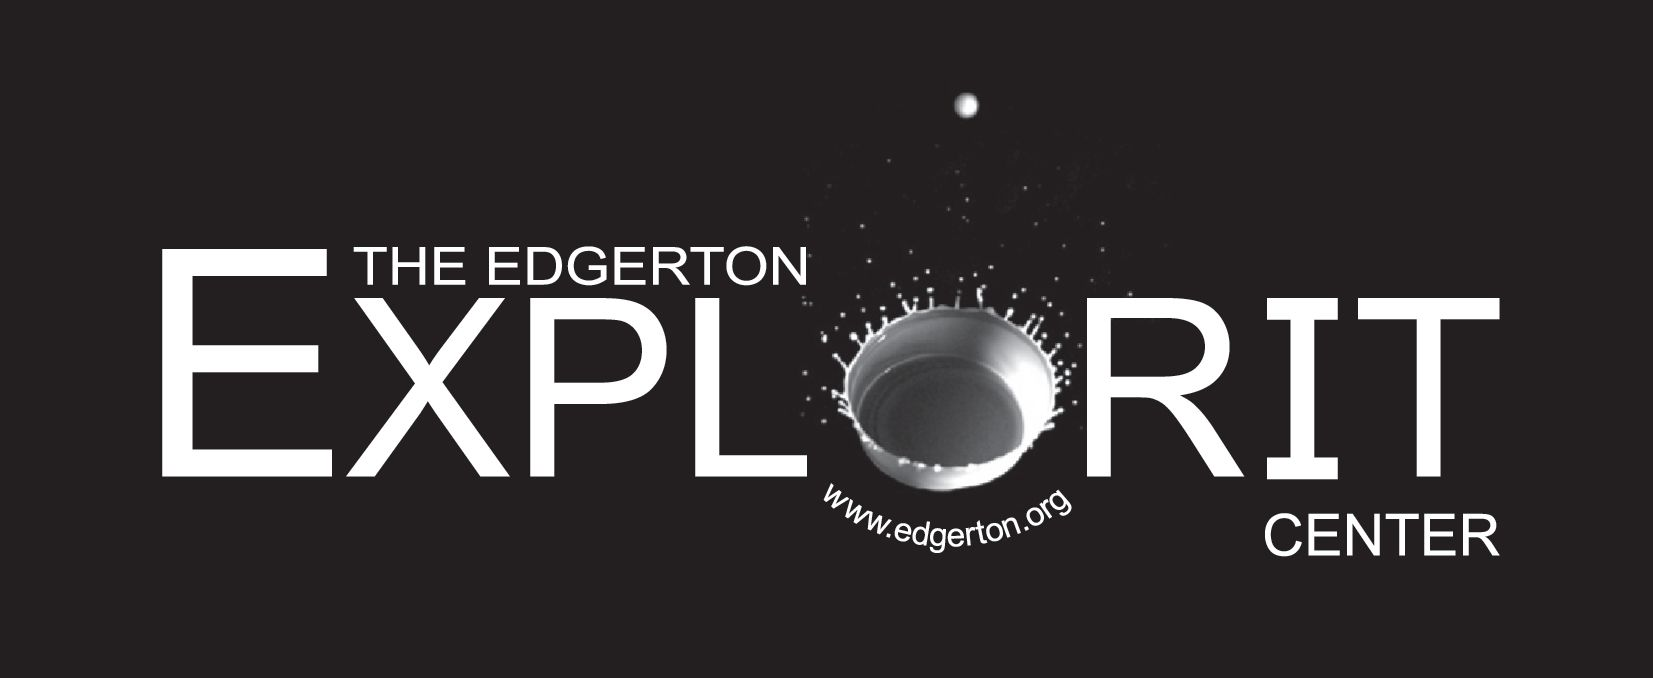 Edgerton Explorit Center.